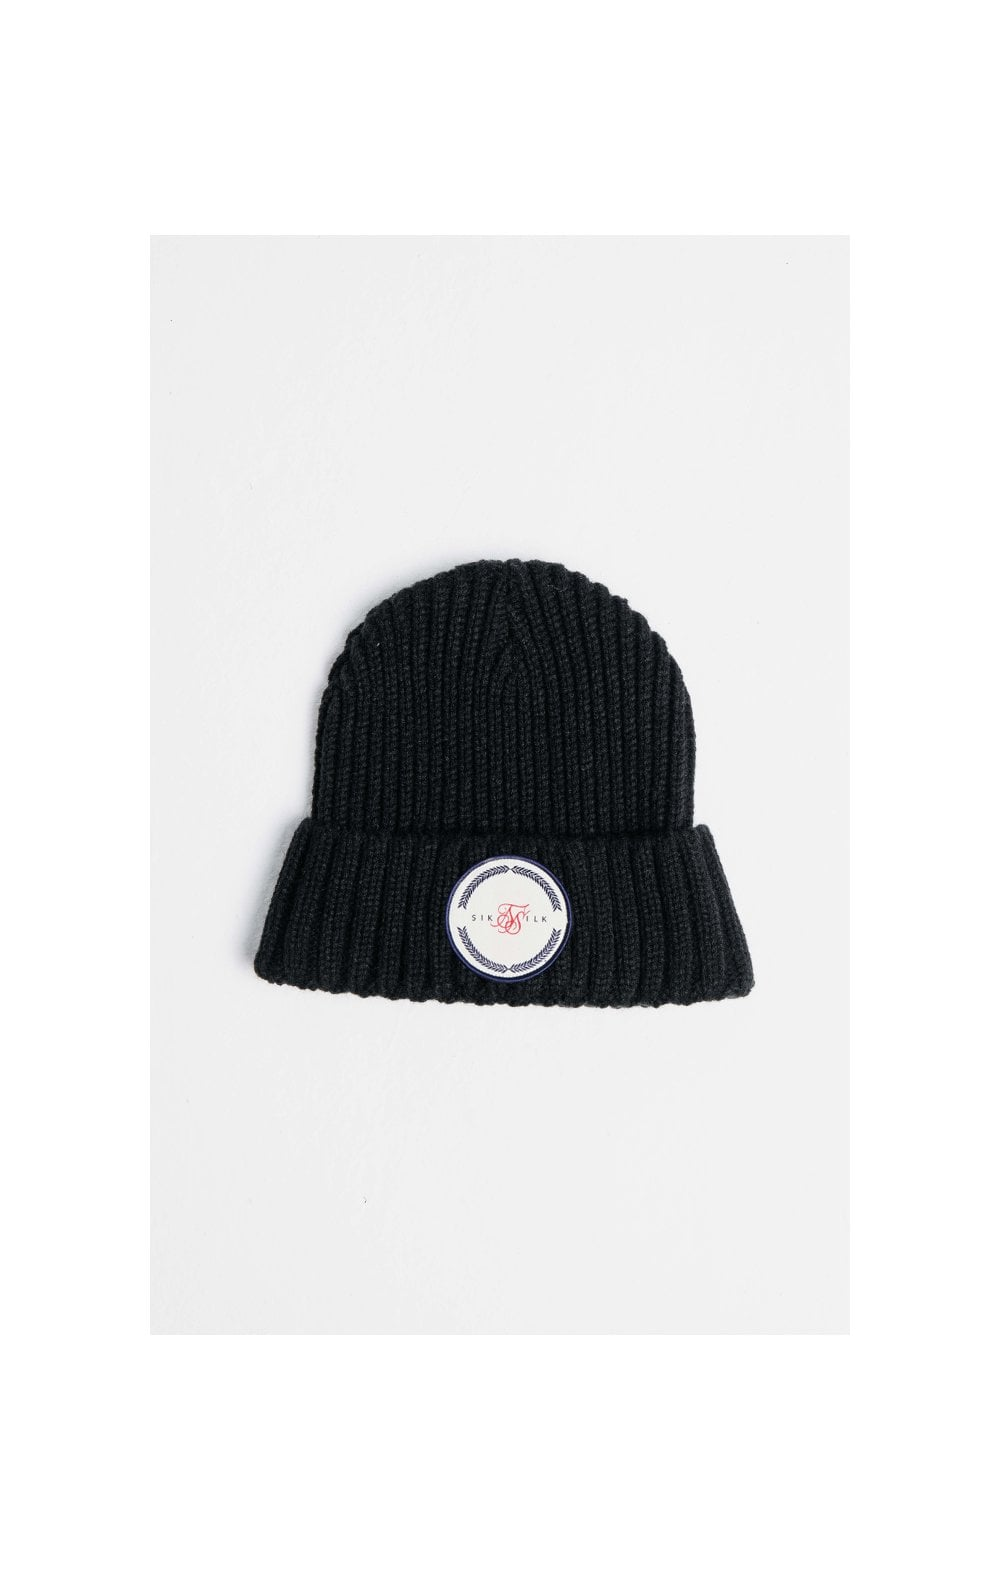 Load image into Gallery viewer, SikSilk Rib Cuff Beanie - Black